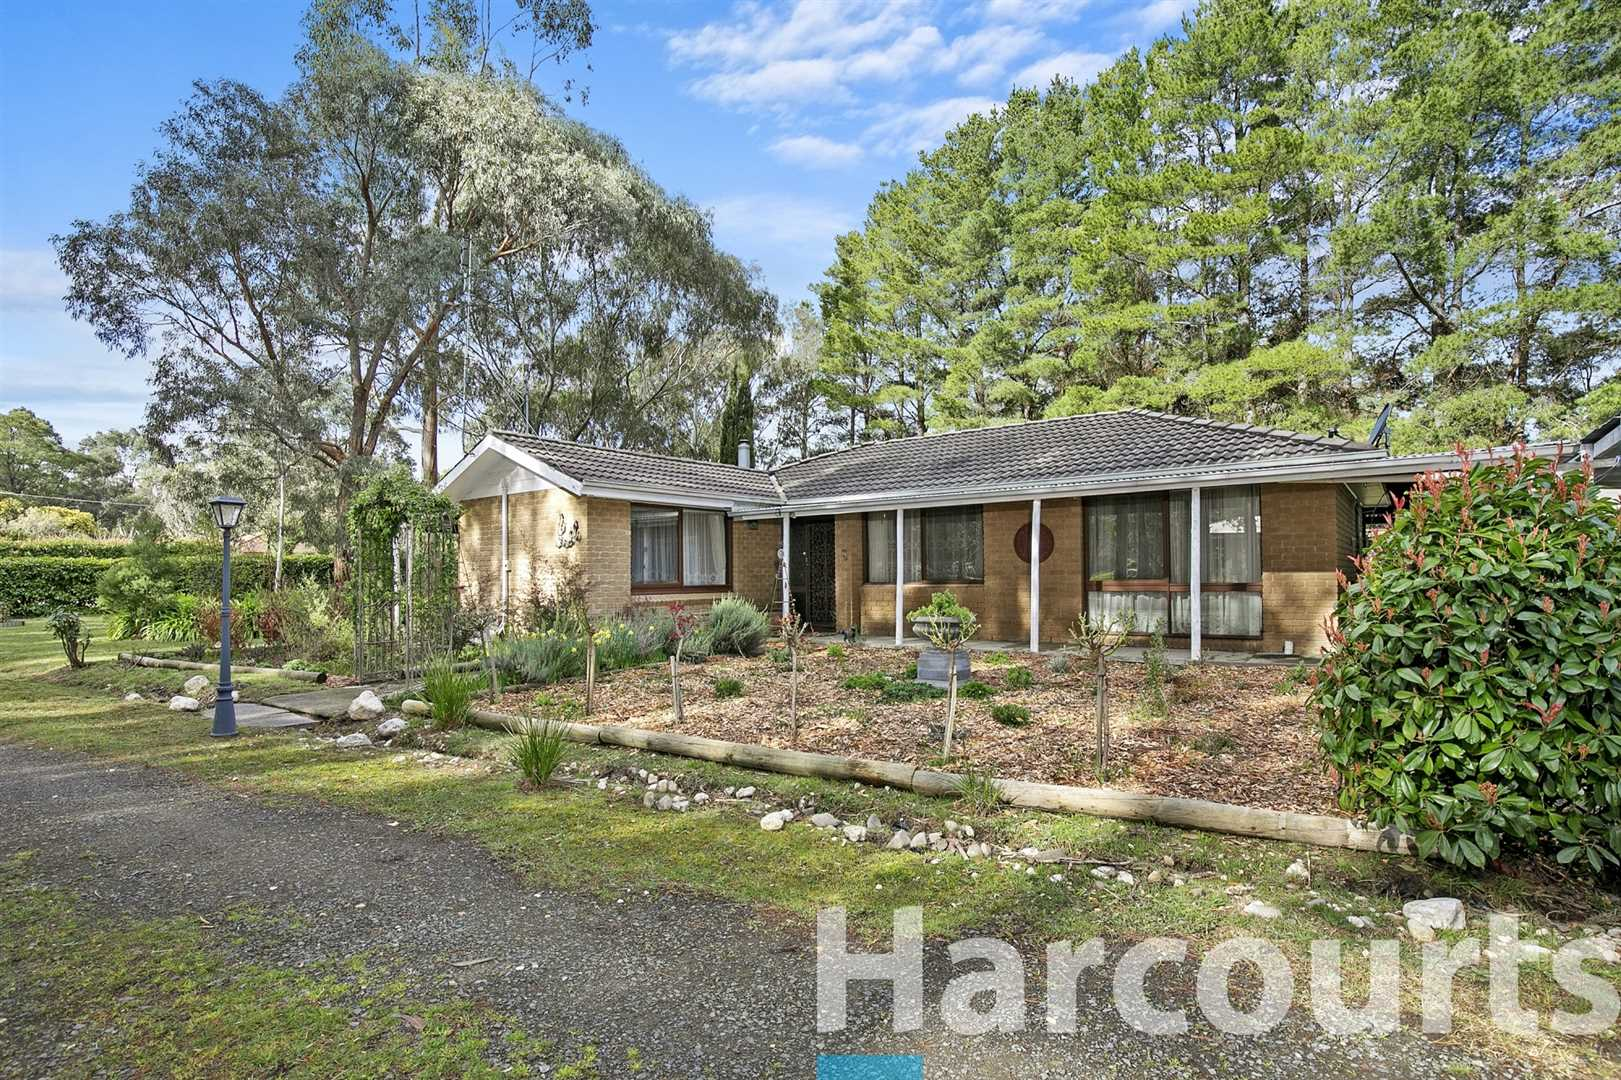 Brick Veneer Home With Fantastic Shedding & Gardens on 2.5ac